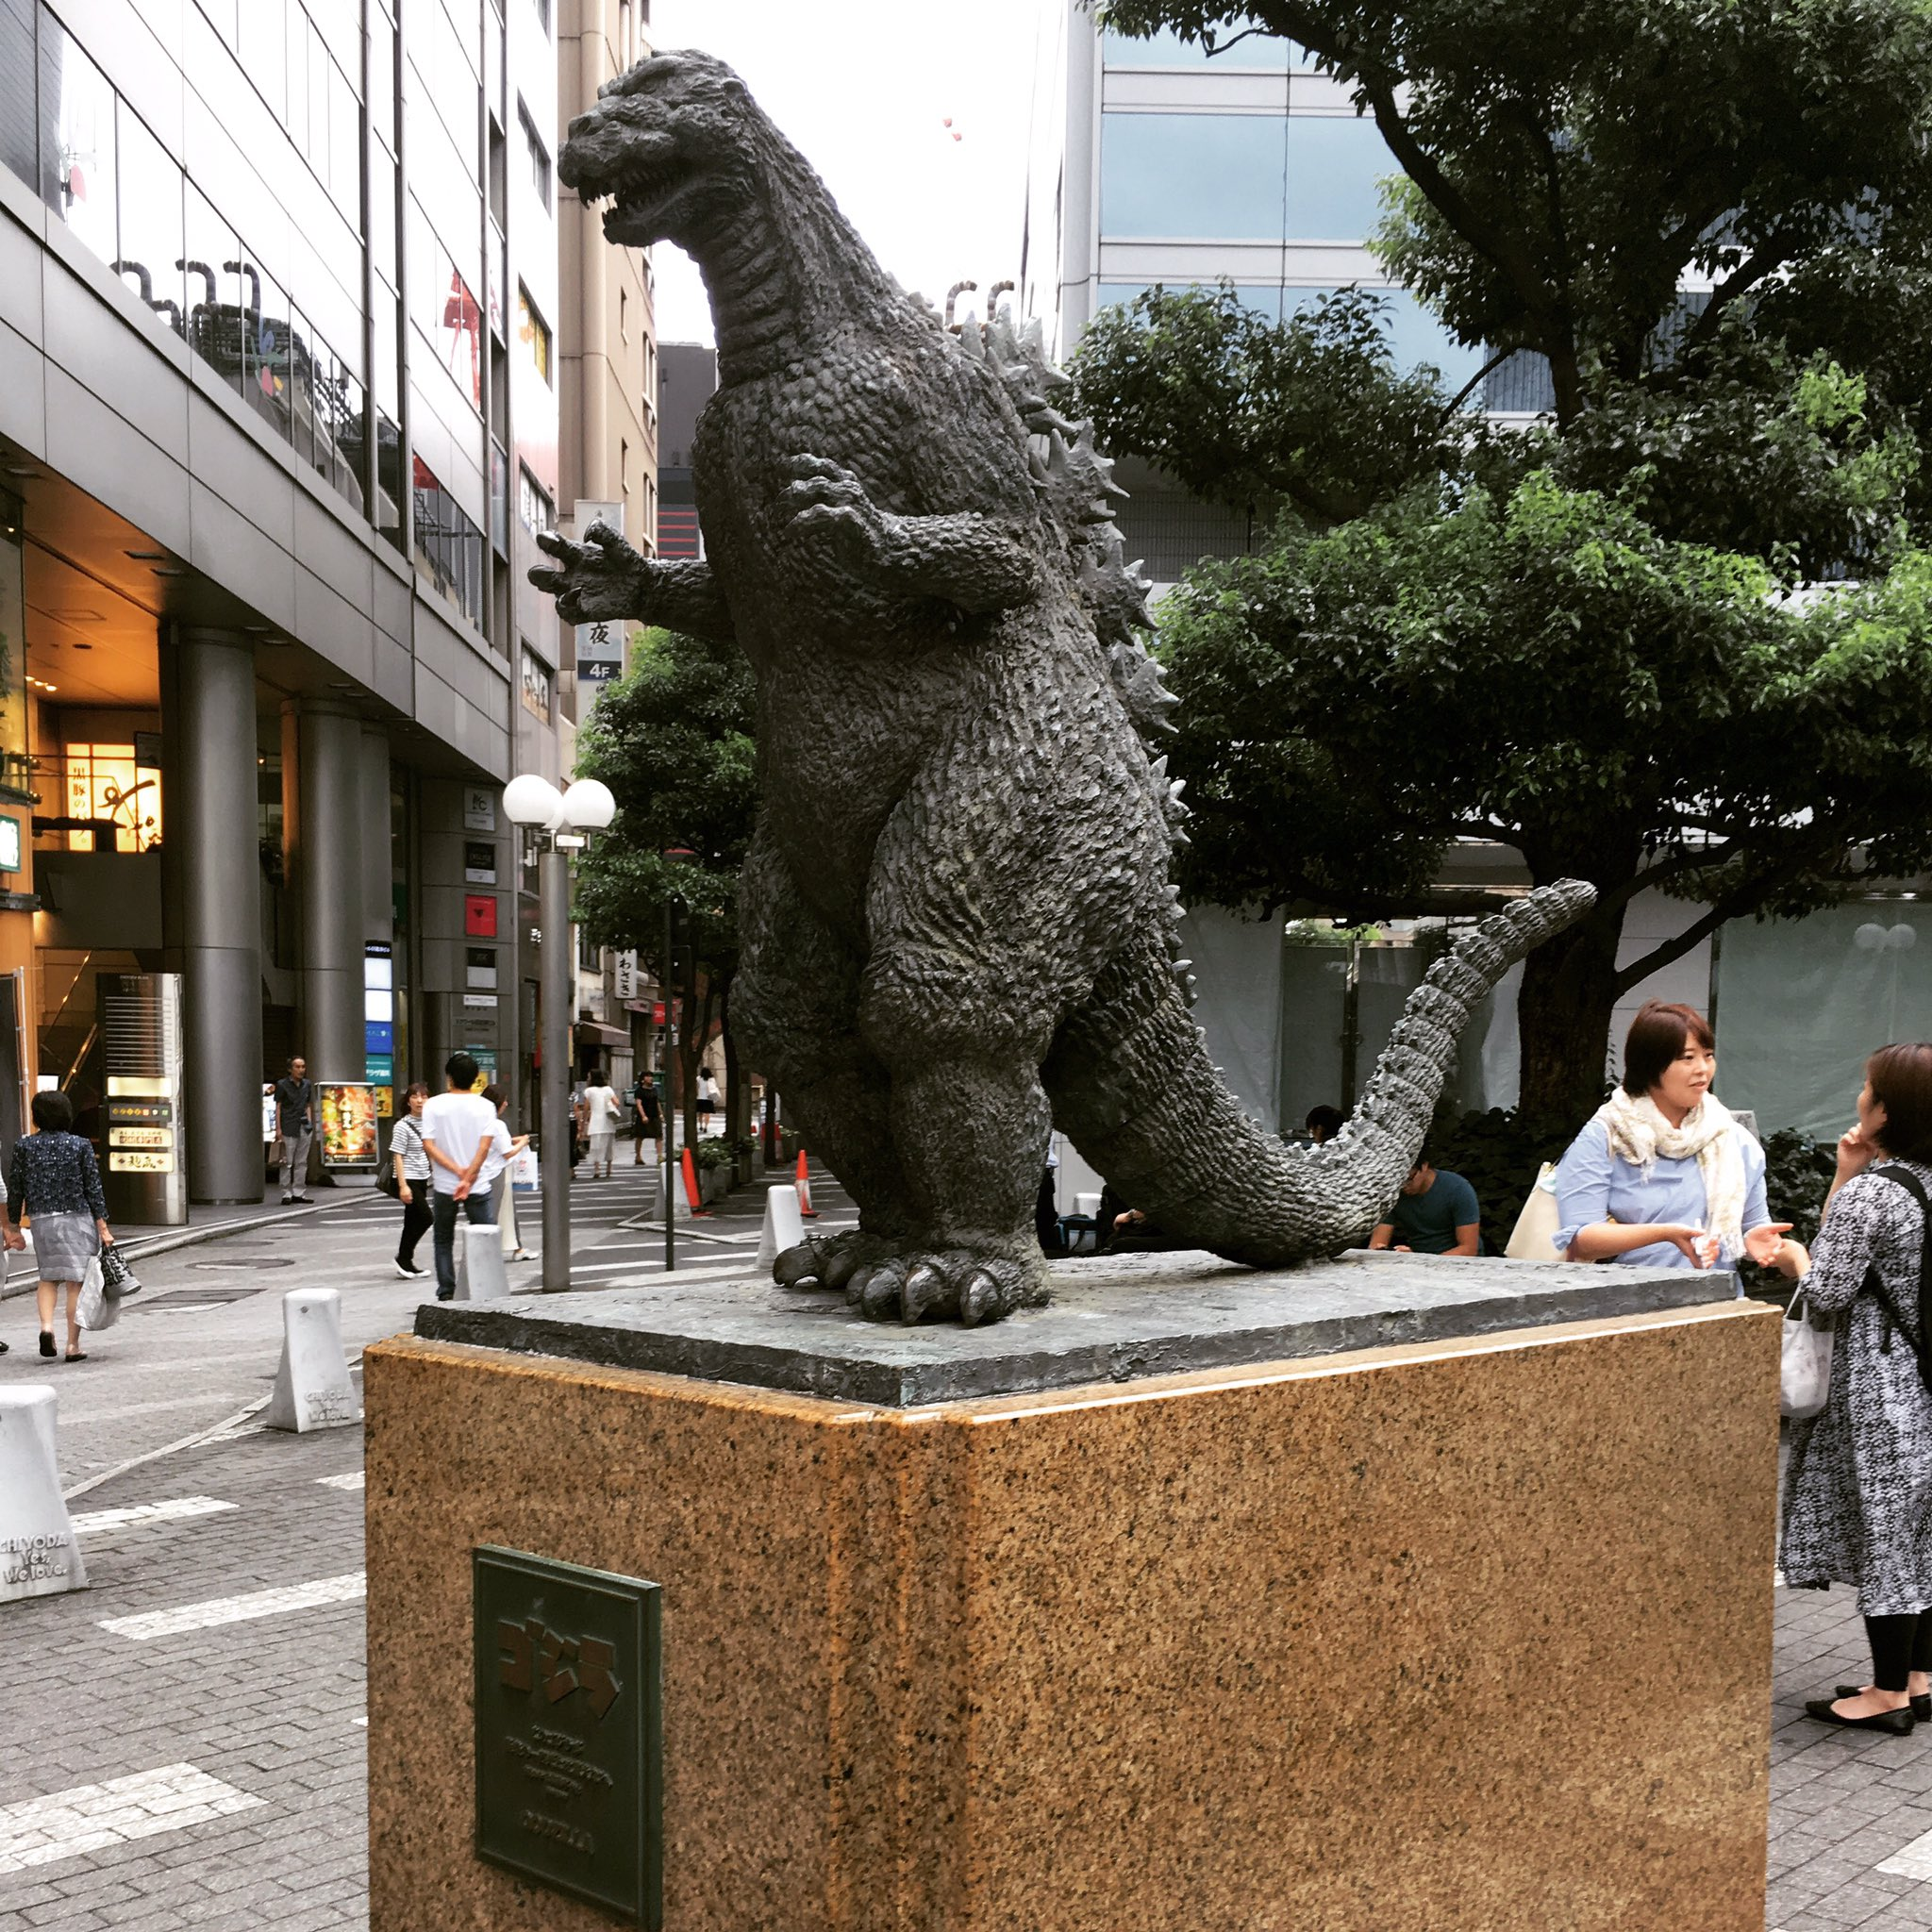 Came across this statue of Godzilla in Japan and ashamed I didn't know this was a real, historical event. Thank you for preserving history. https://t.co/521OgWSfis